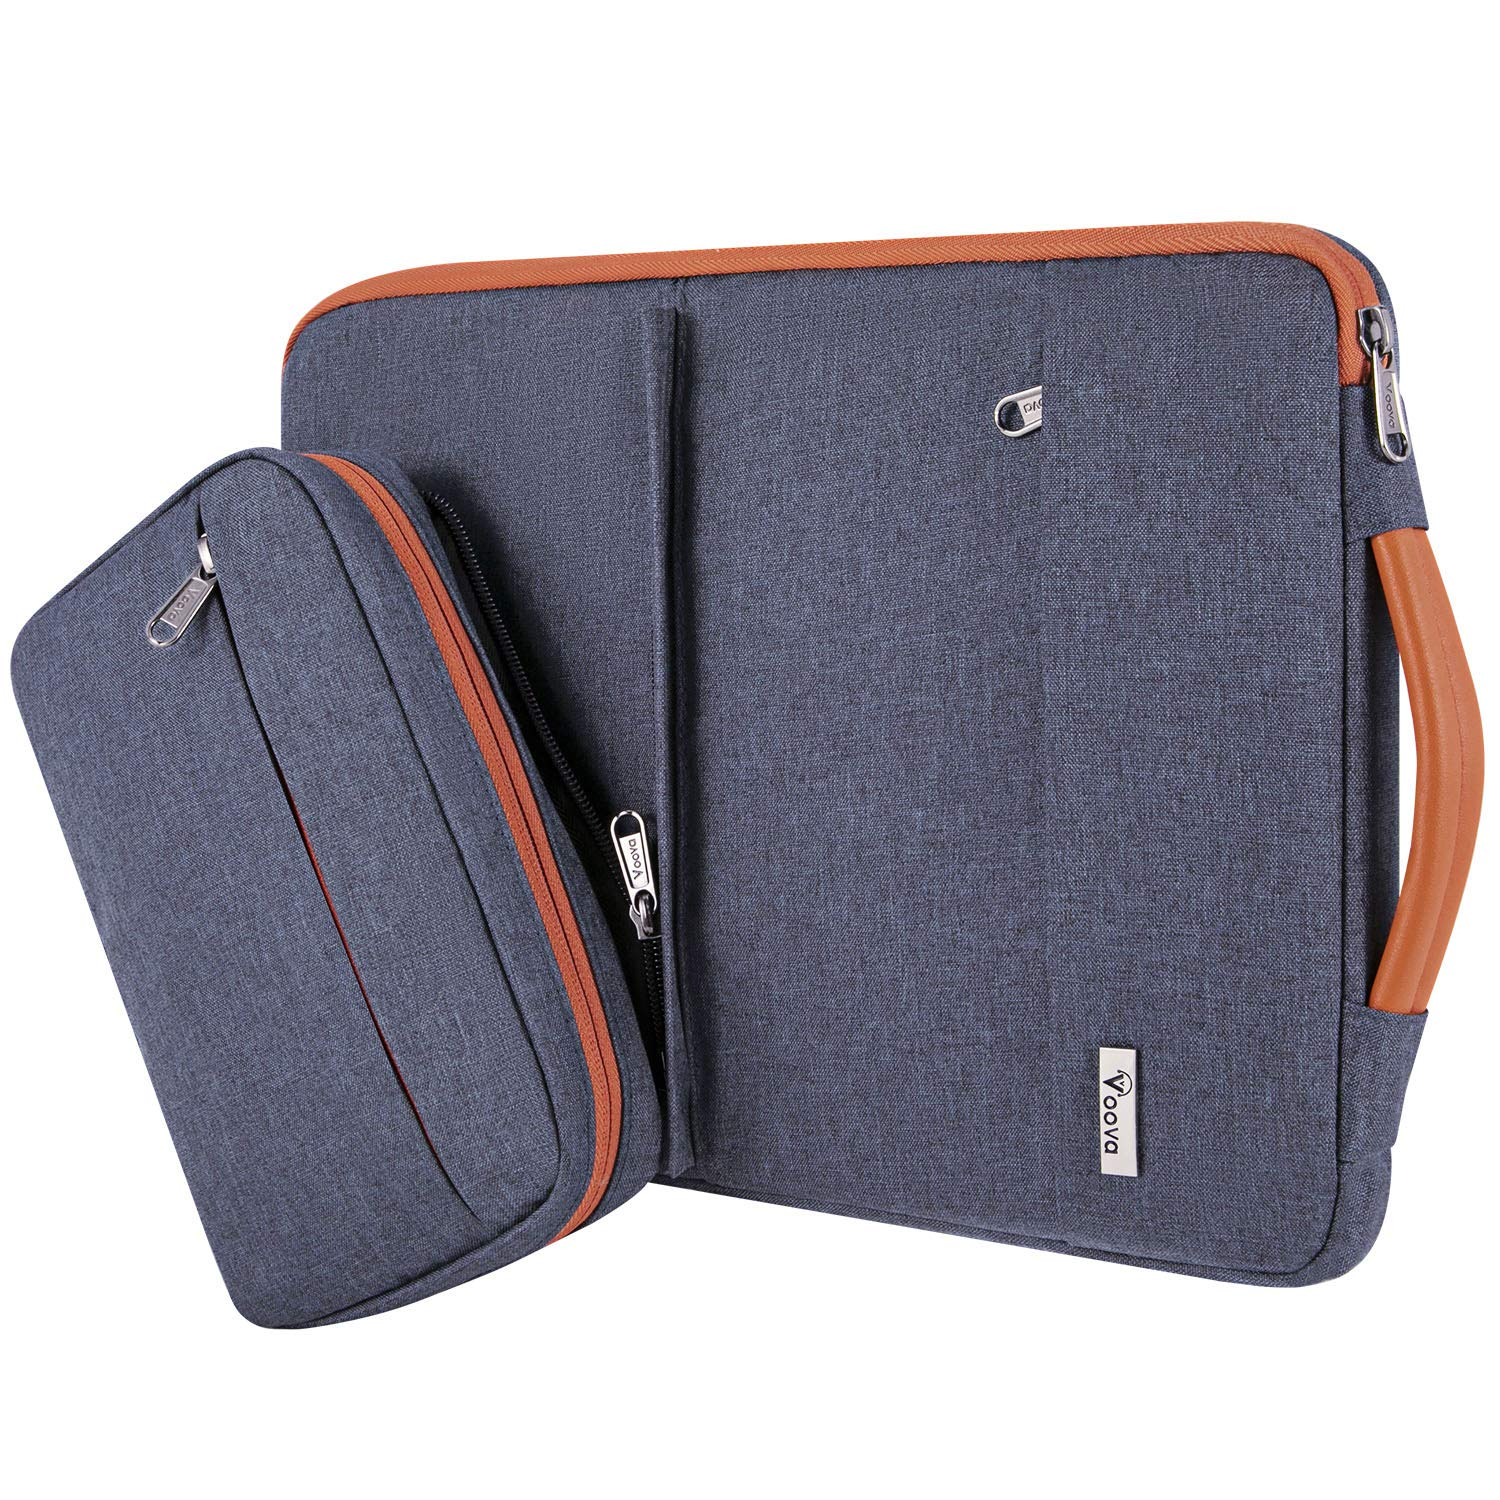 """Voova 14-15.6 Inch Laptop Sleeve Case with Detachable Accessory Pocket, Waterproof Computer Carry Bag Cover Compatible with MacBook Pro 15/16, Acer Hp Samsung Chromebook, 15"""" Surface Book, Dark Grey"""